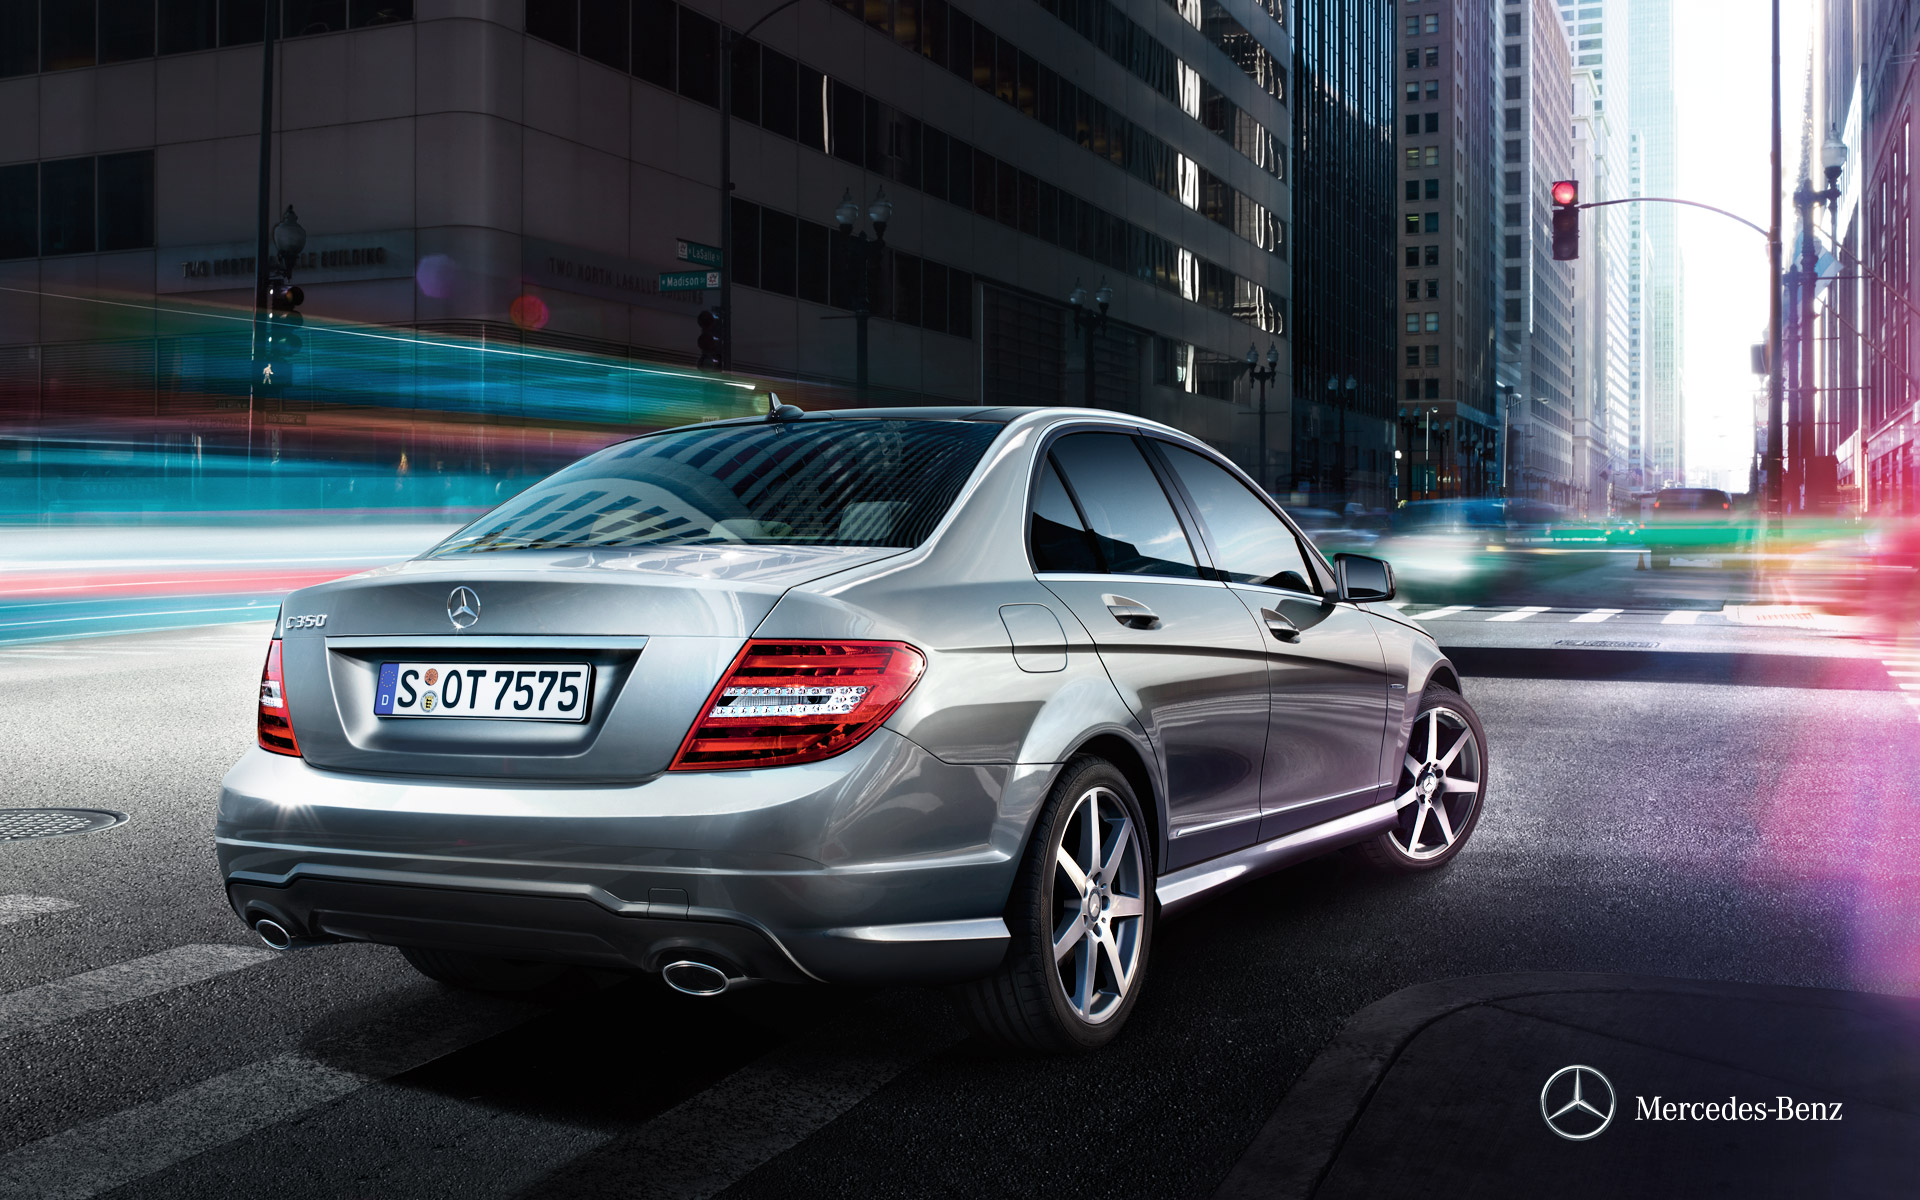 mercedes-benz c-class 2012 c 250 in egypt: new car prices, specs